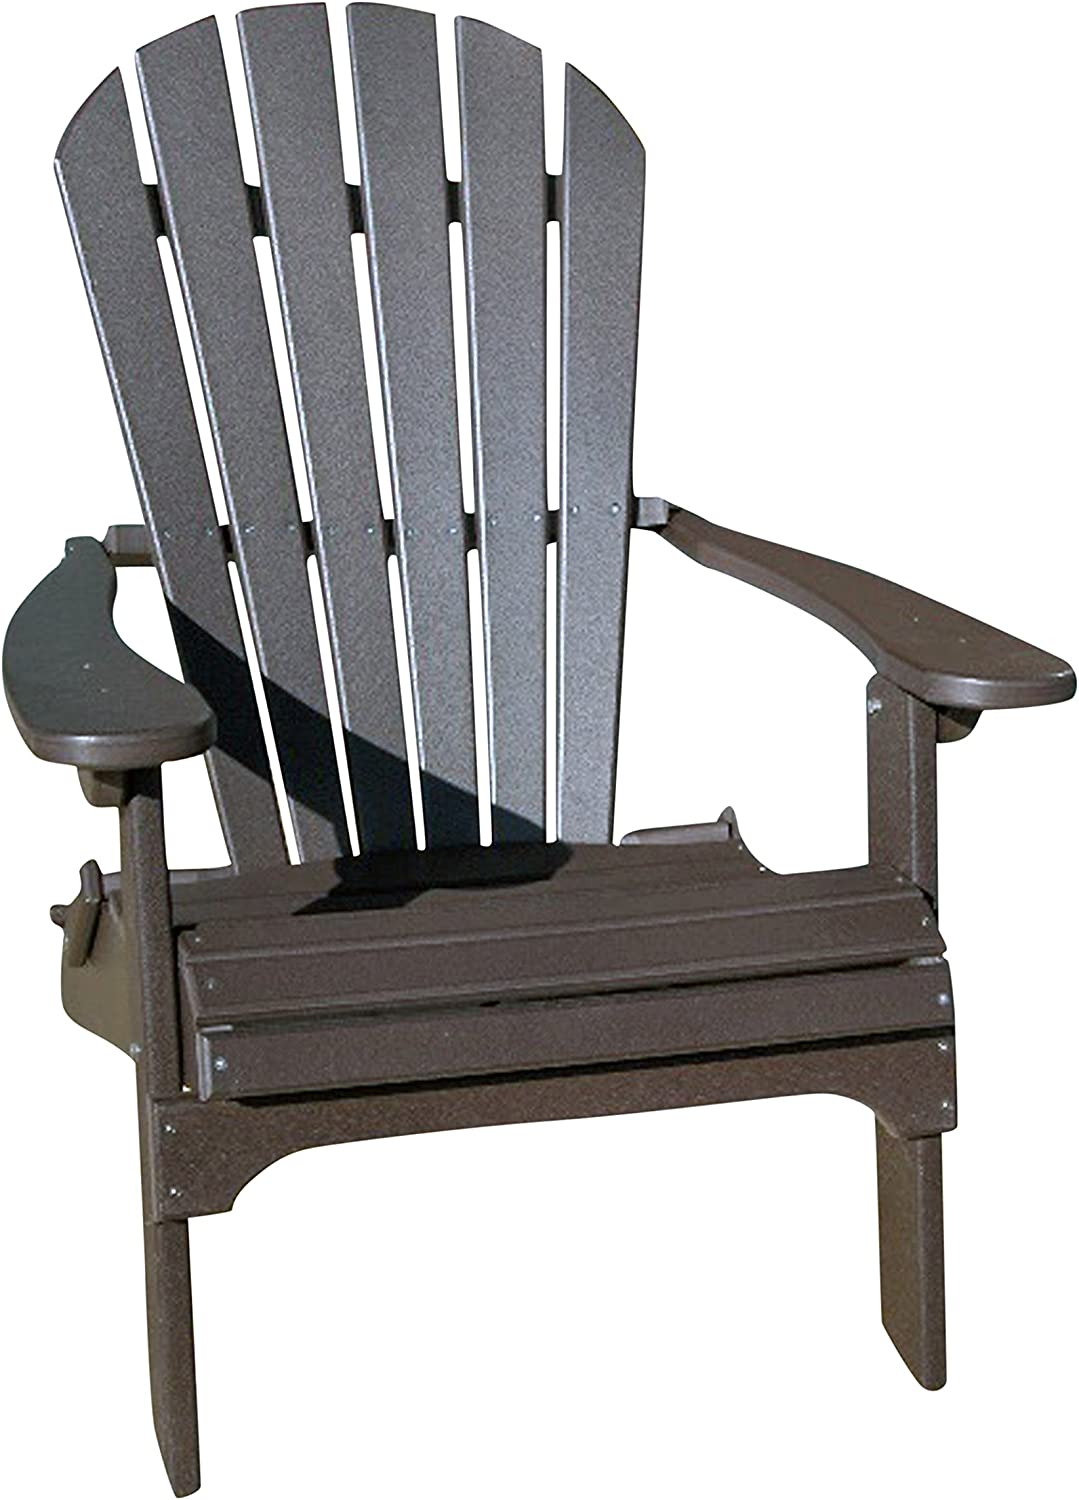 Phat Tommy Recycled Poly Resin Folding Adirondack Chair – Durable and Eco-Friendly Armchair. This Patio Furniture is Great for Your Lawn, Garden, Swimming Pool, Deck. : Garden & Outdoor